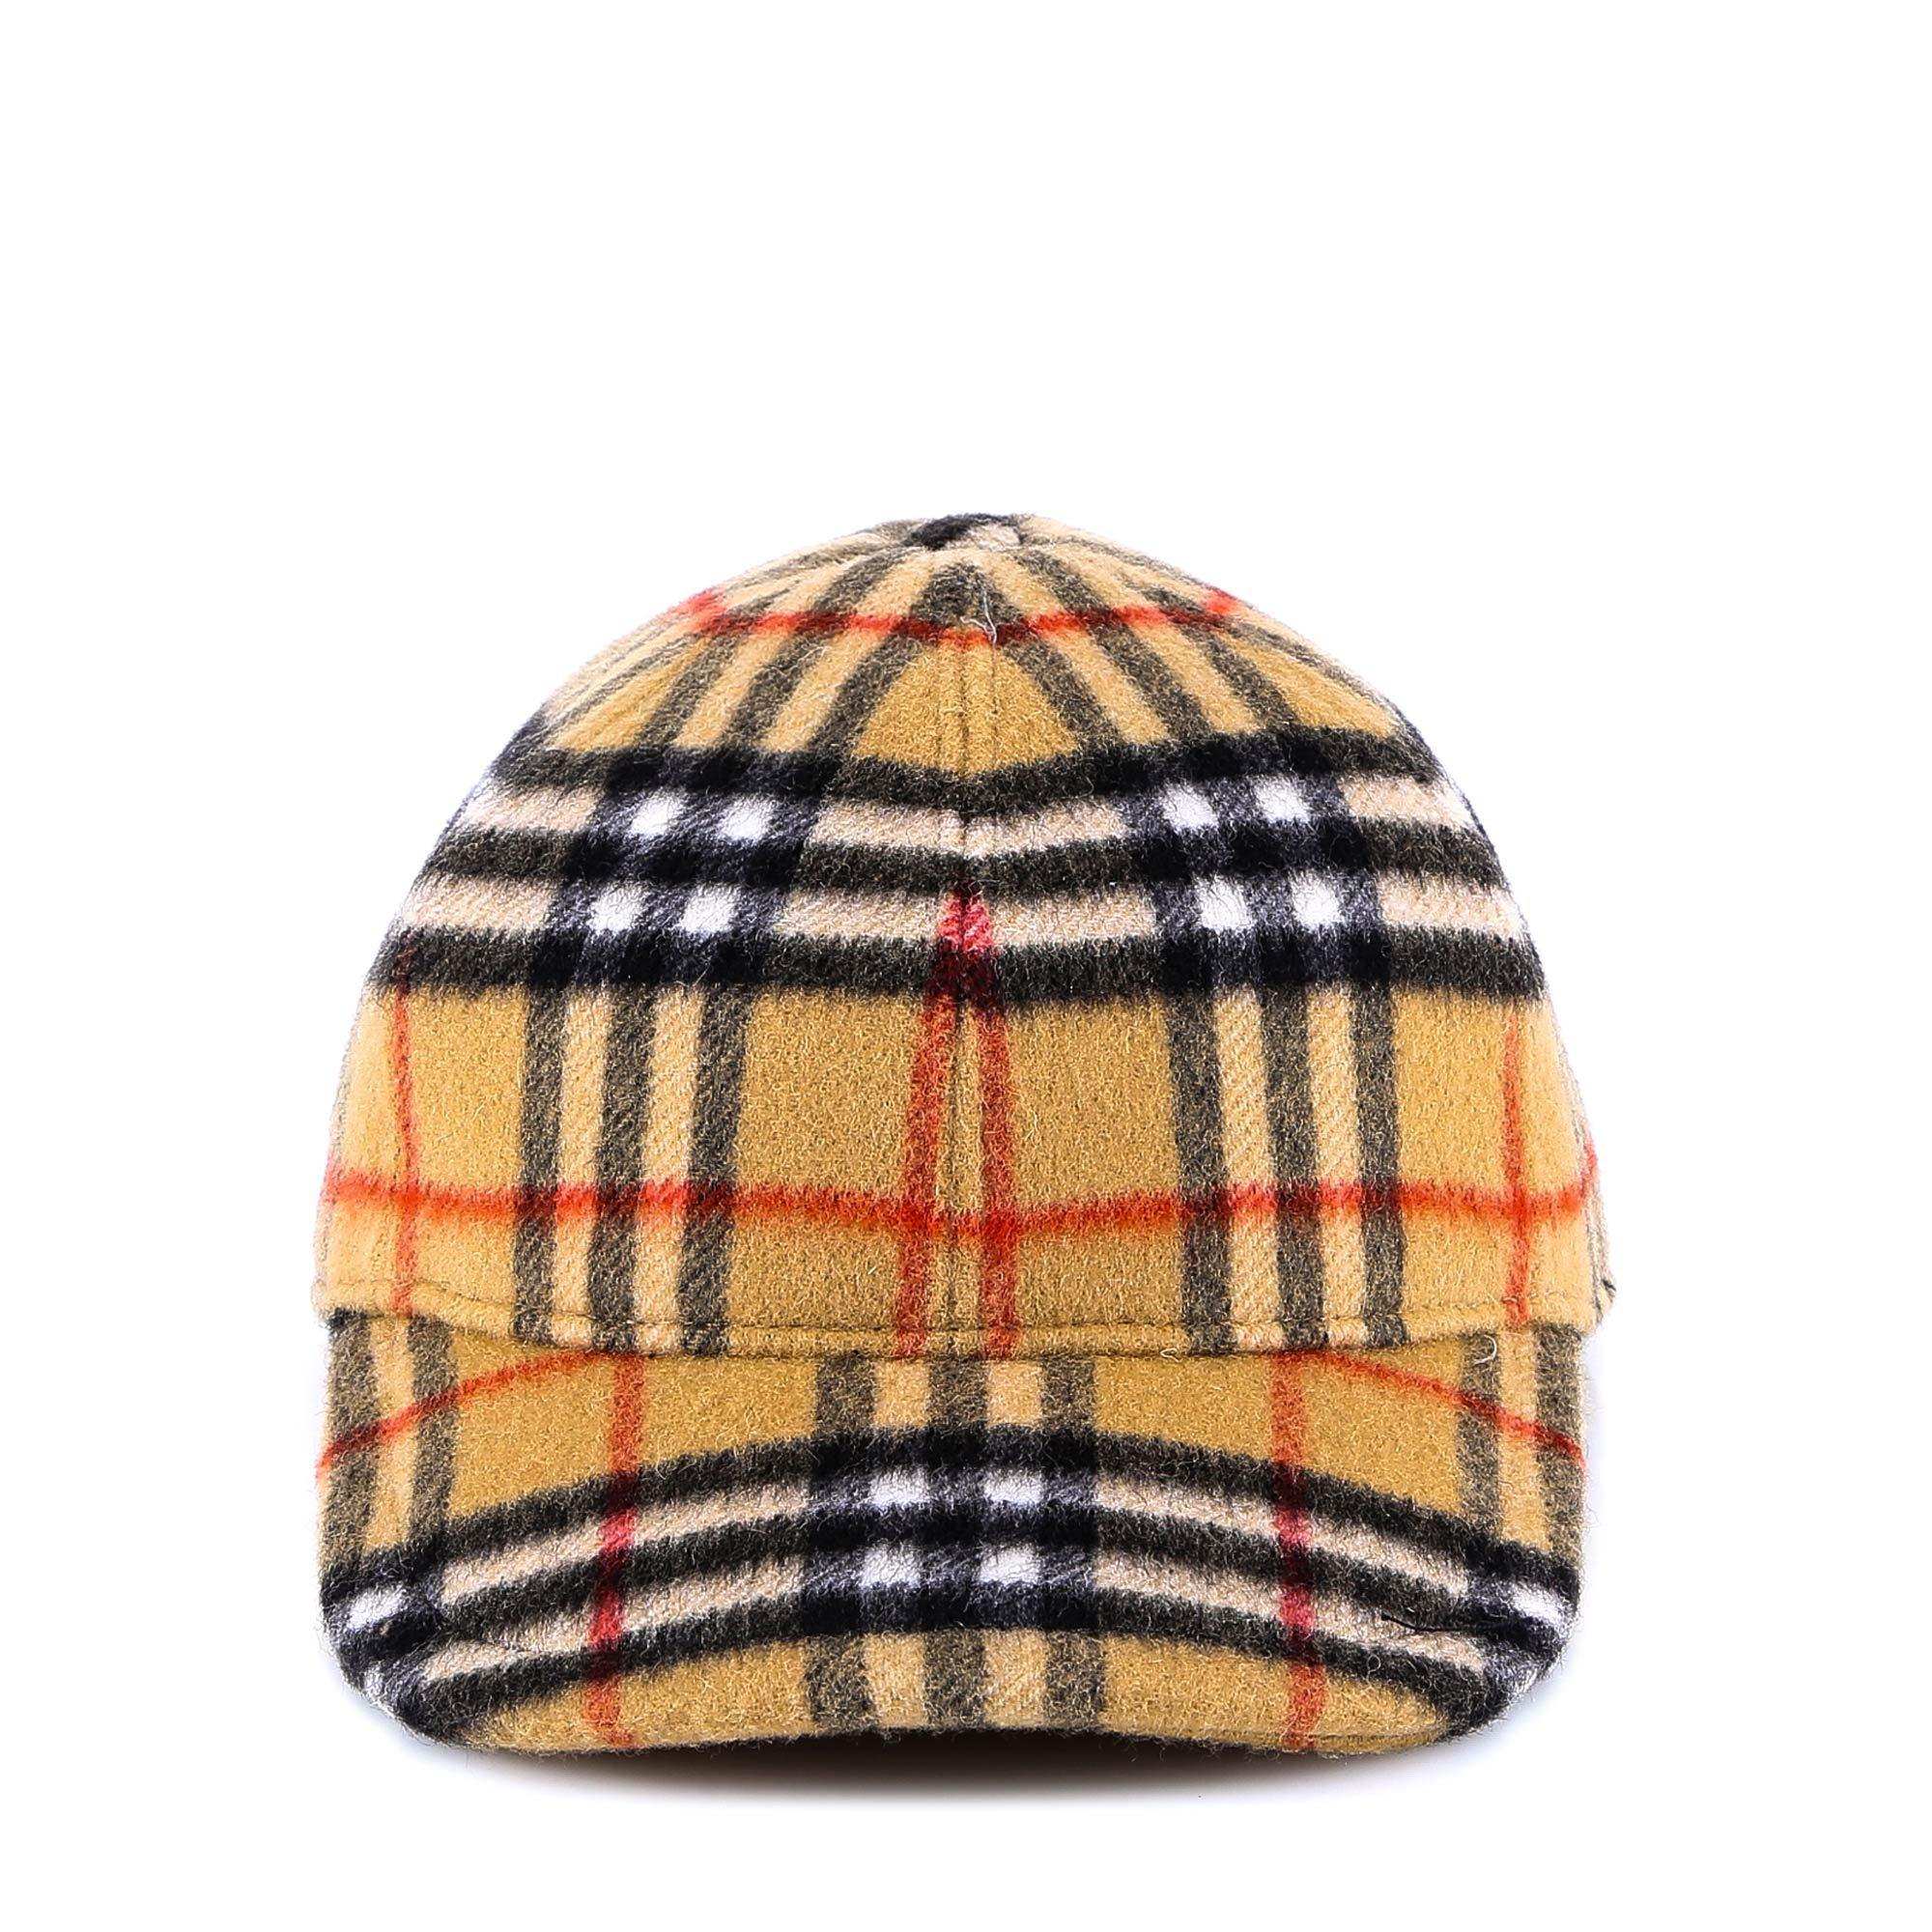 f6dc3f7ac1a912 Burberry Original Check Print Hat in Brown - Lyst